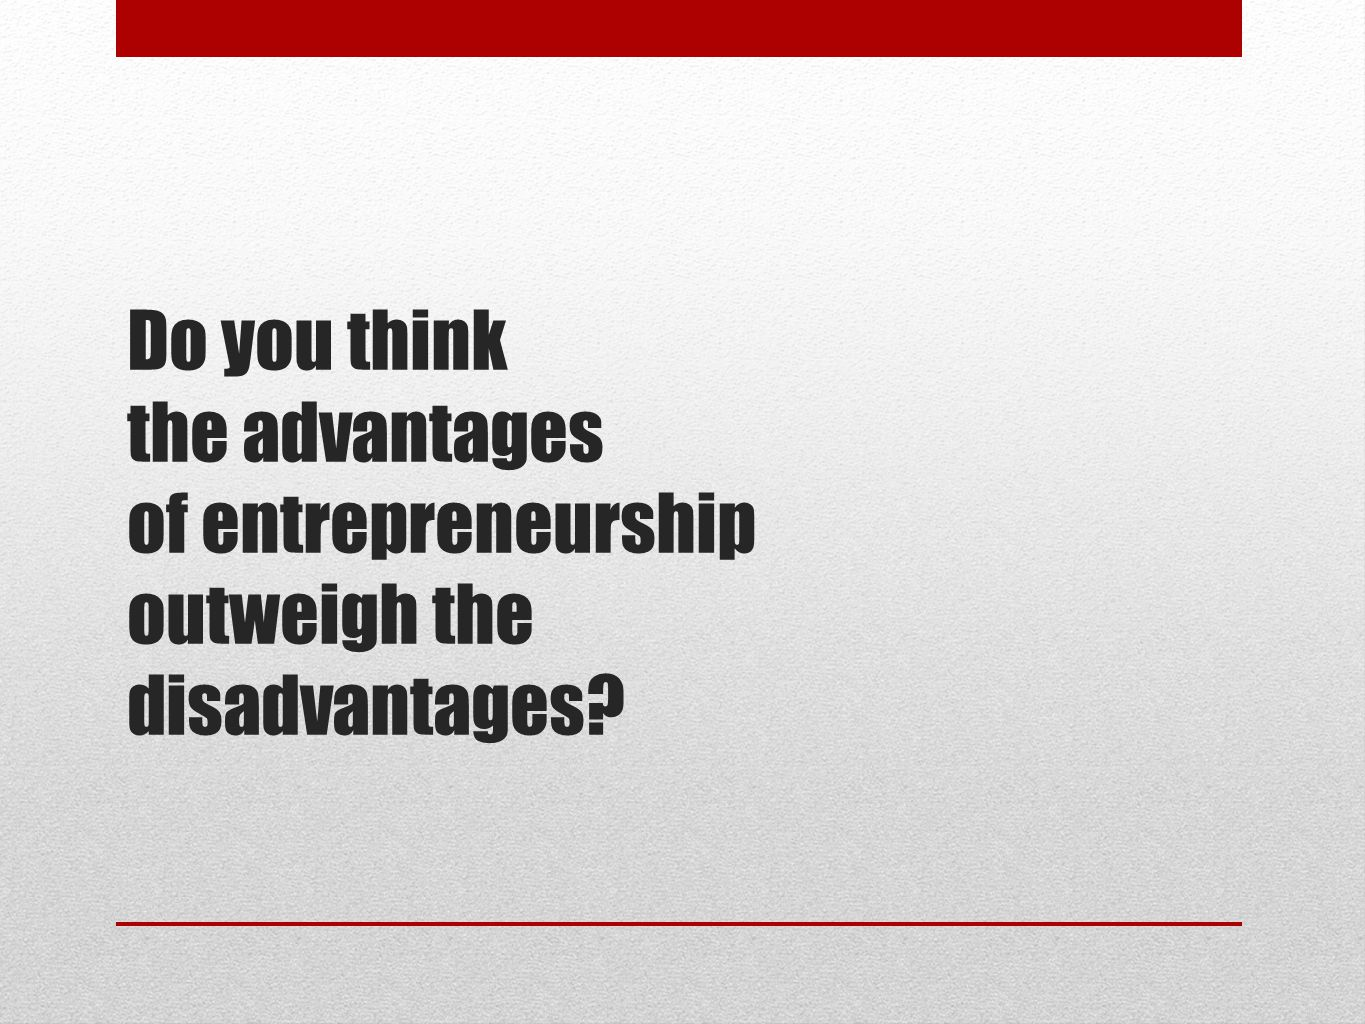 Do you think the advantages of entrepreneurship outweigh the disadvantages?